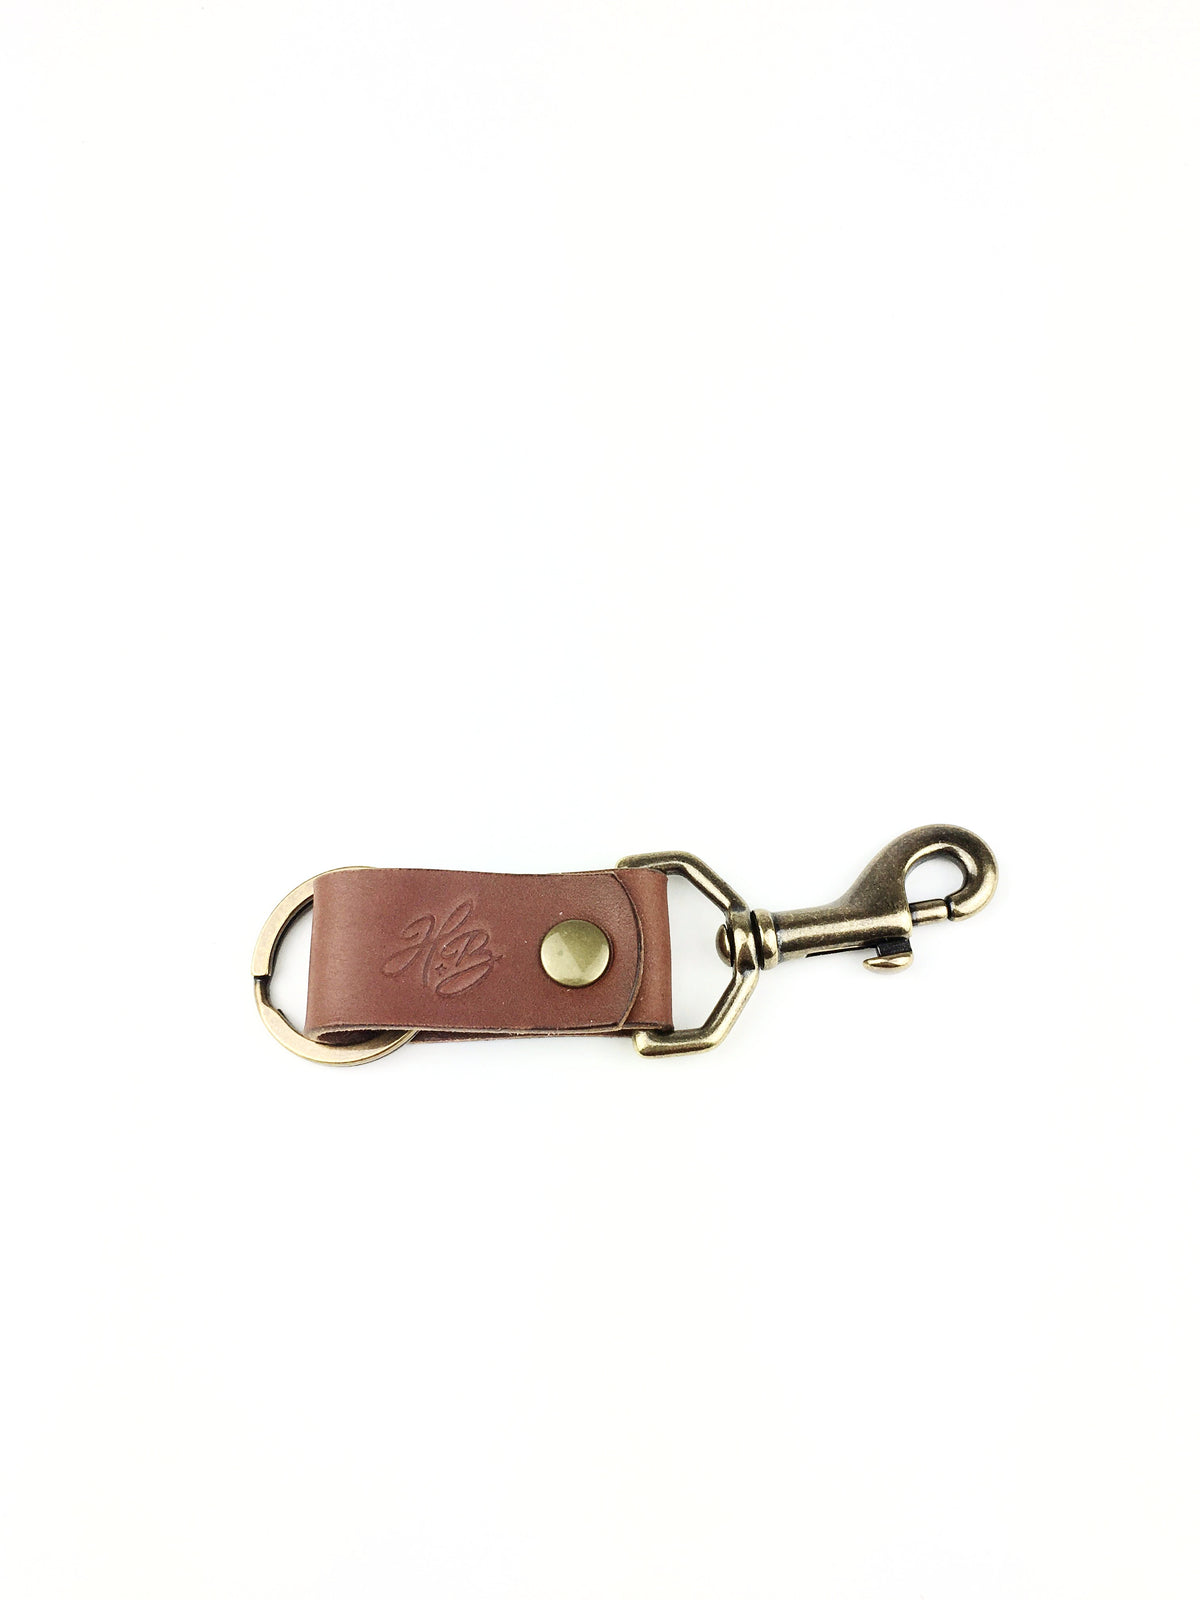 H+B KEY FOB | SEDONA BROWN LEATHER KEY FOB